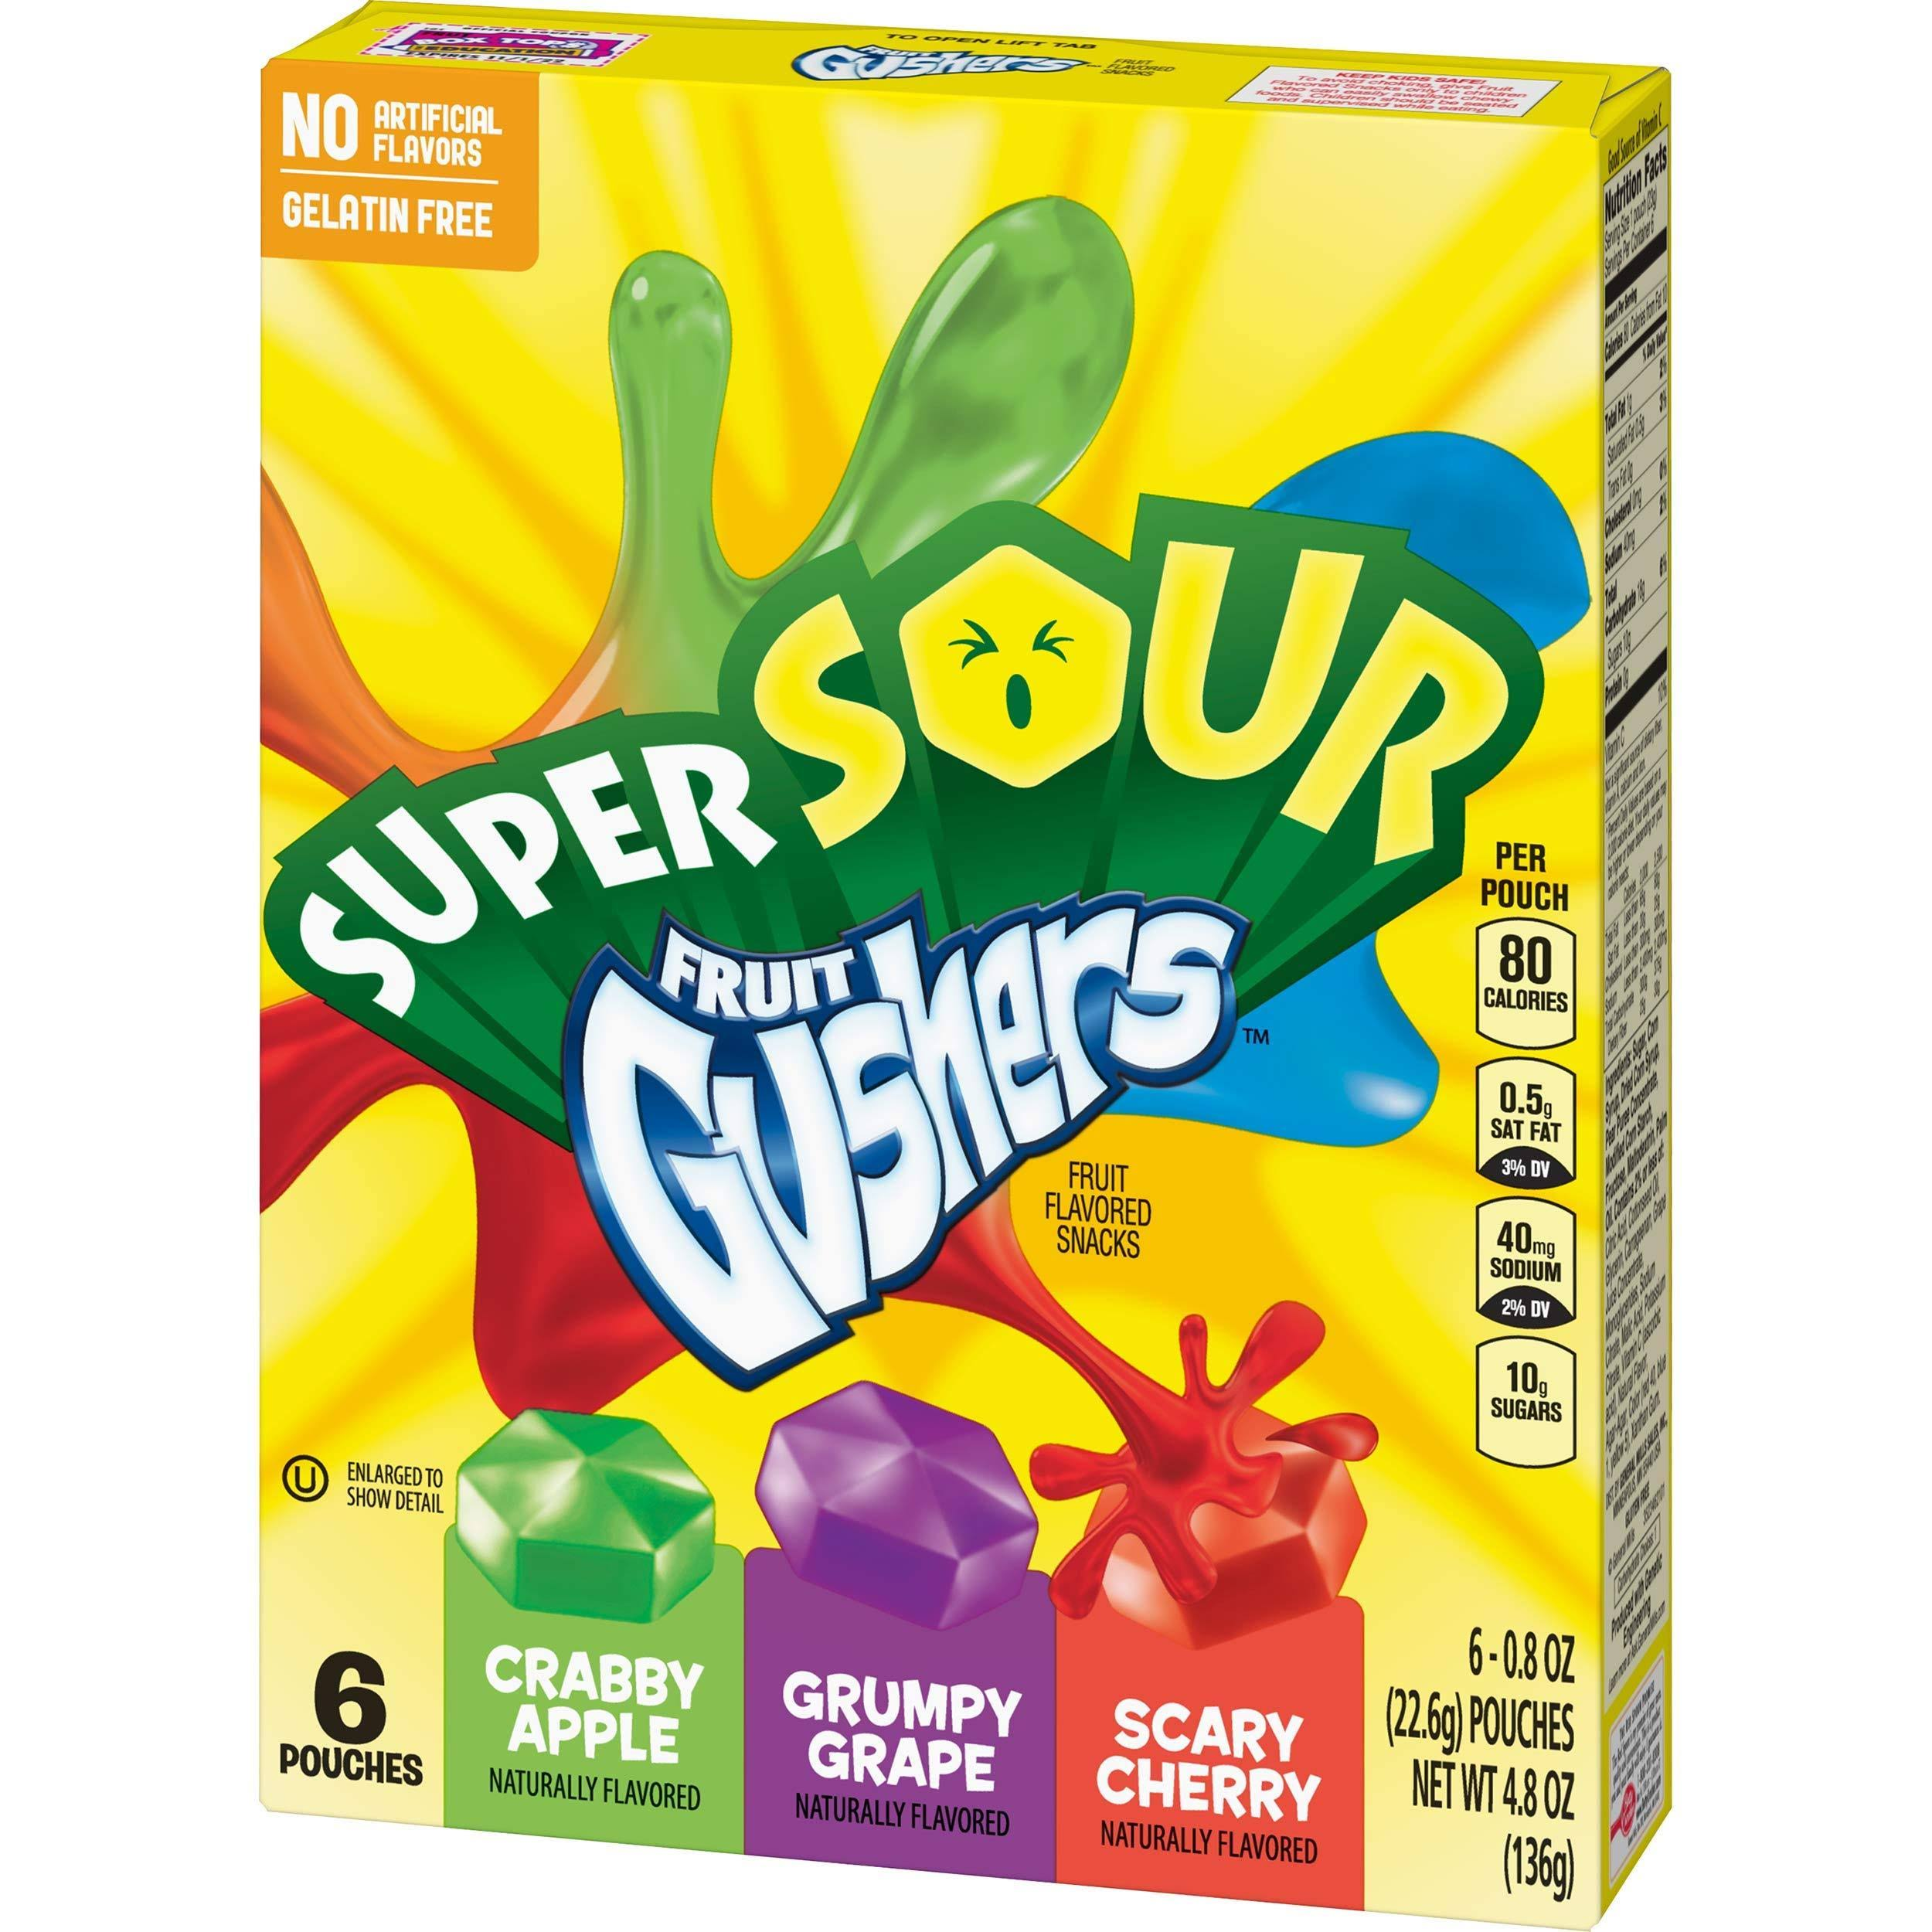 Super Sour Fruit Flavored Snacks - 6ct, 4.8oz